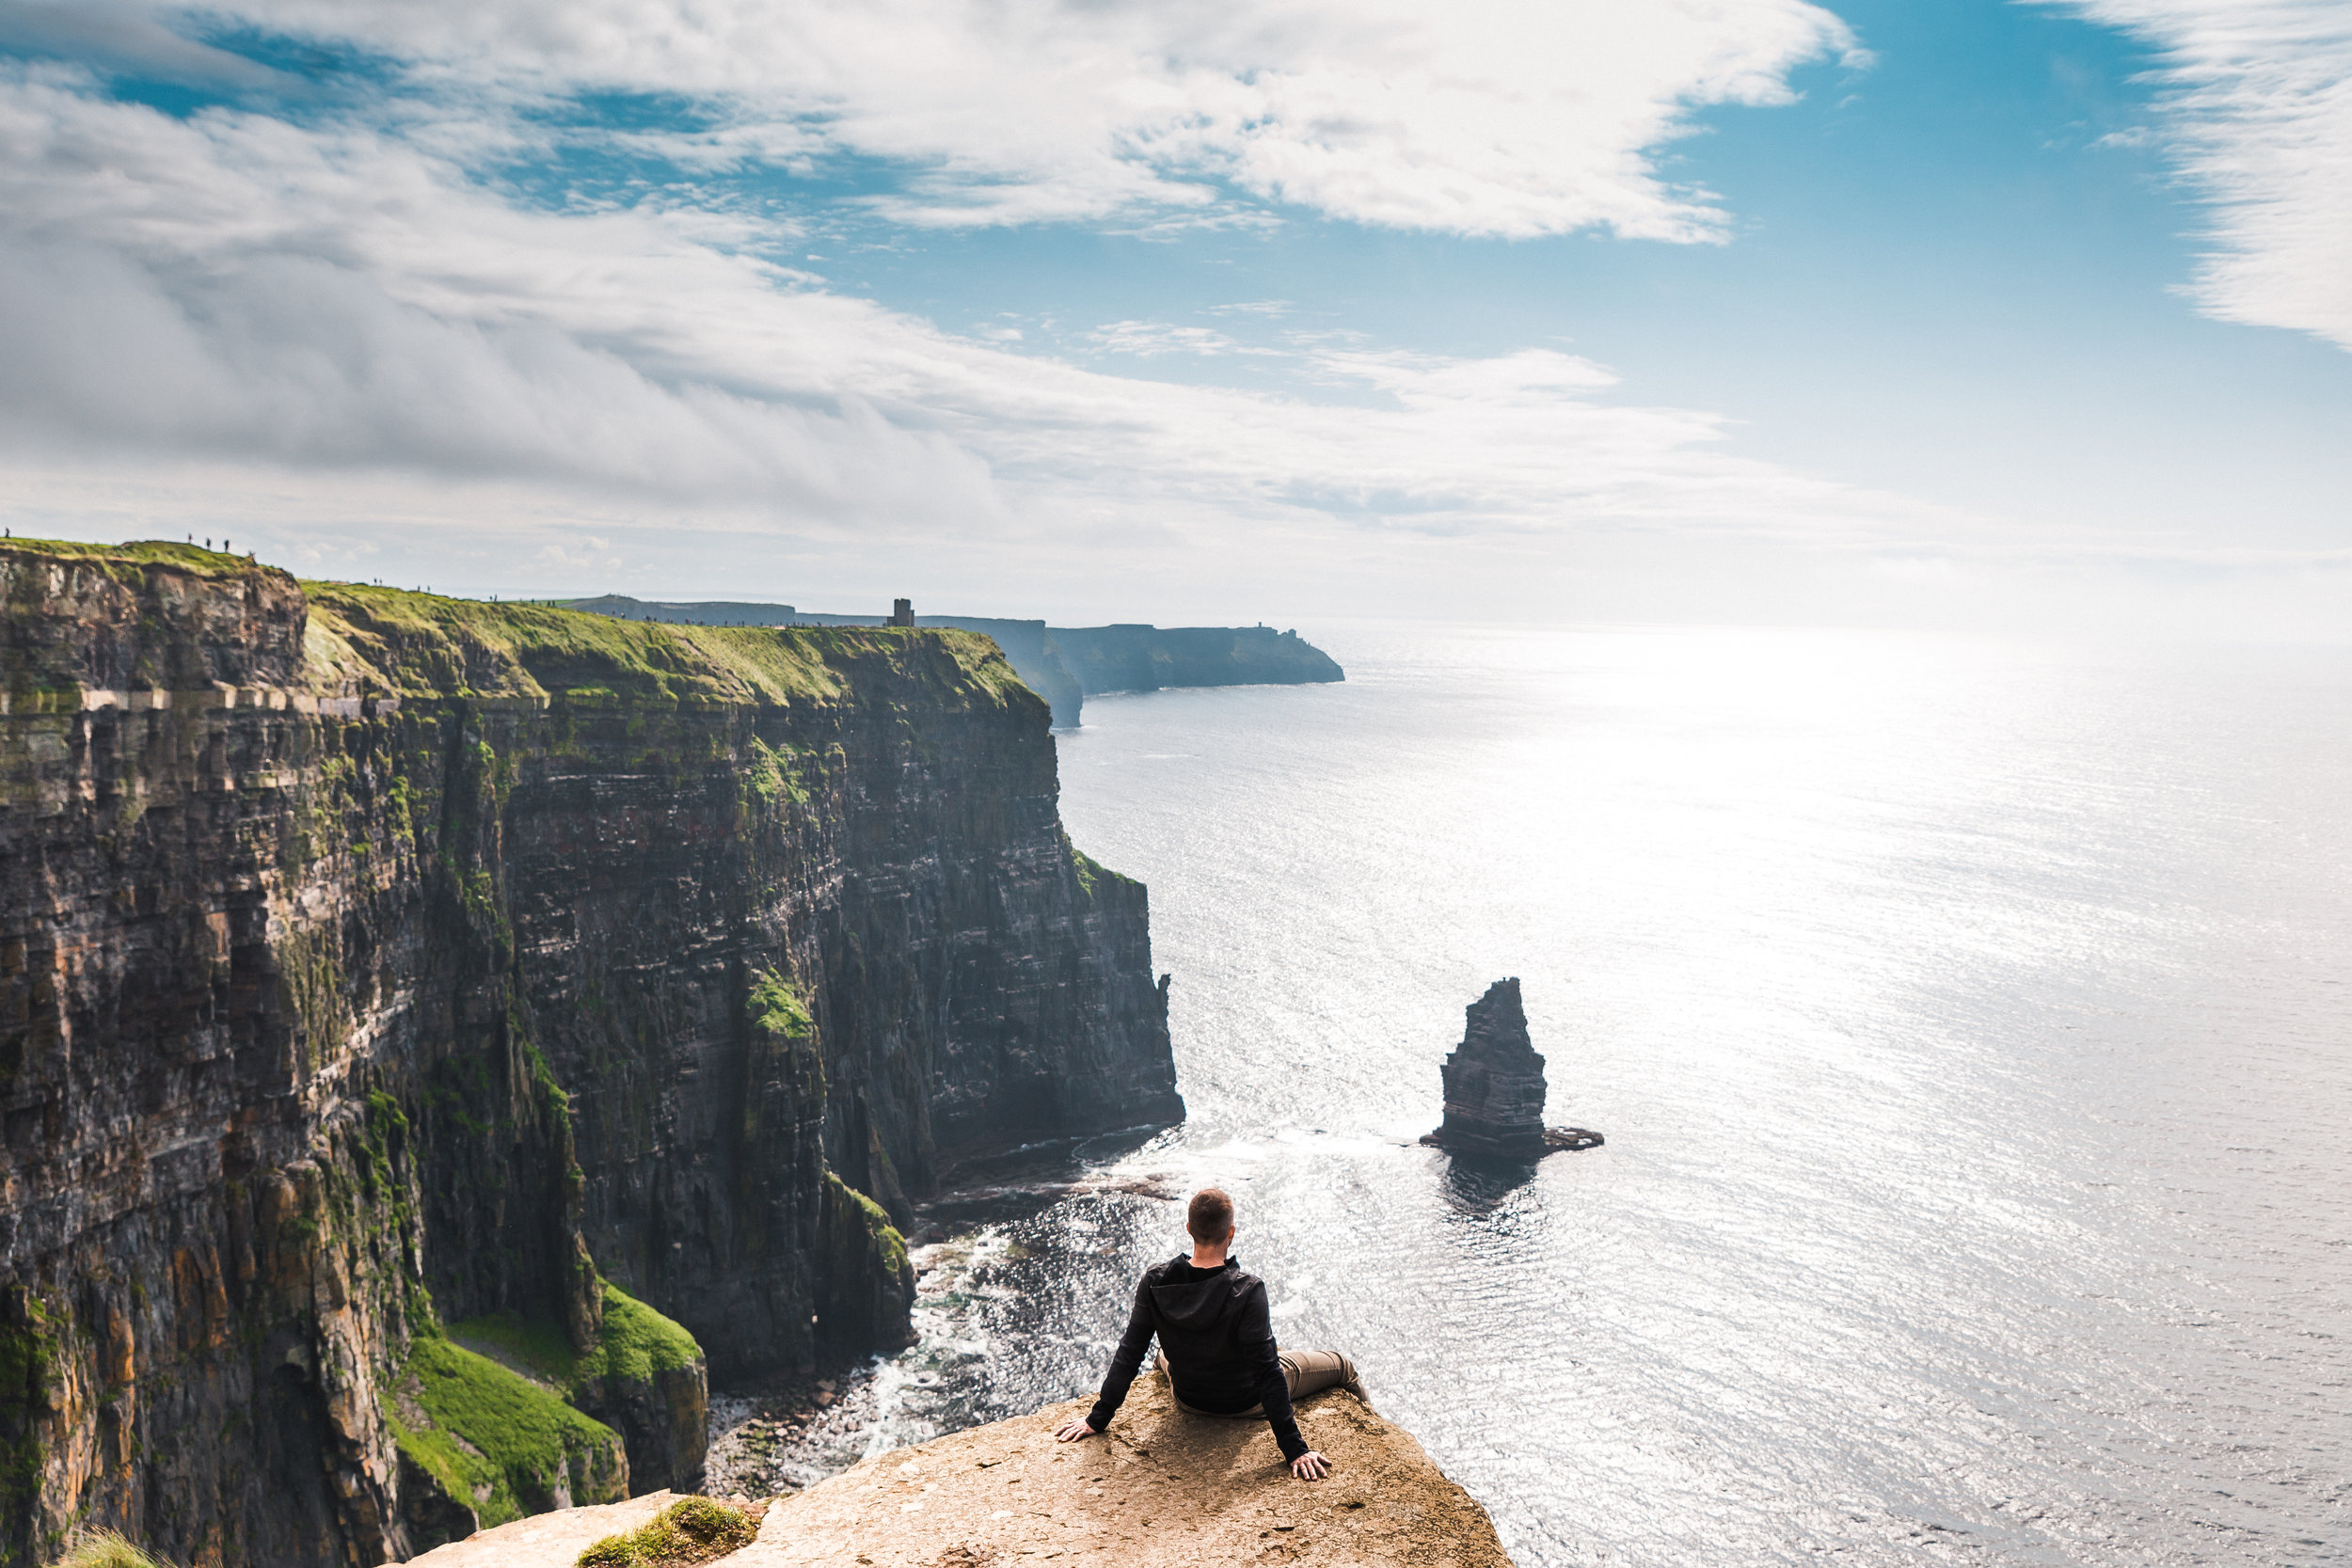 7 Days Around Ireland With Shamrocker Adventures // #readysetjetset #ireland #cliffsofmoher #belfast #travel #northernireland www.readysetjetset.net